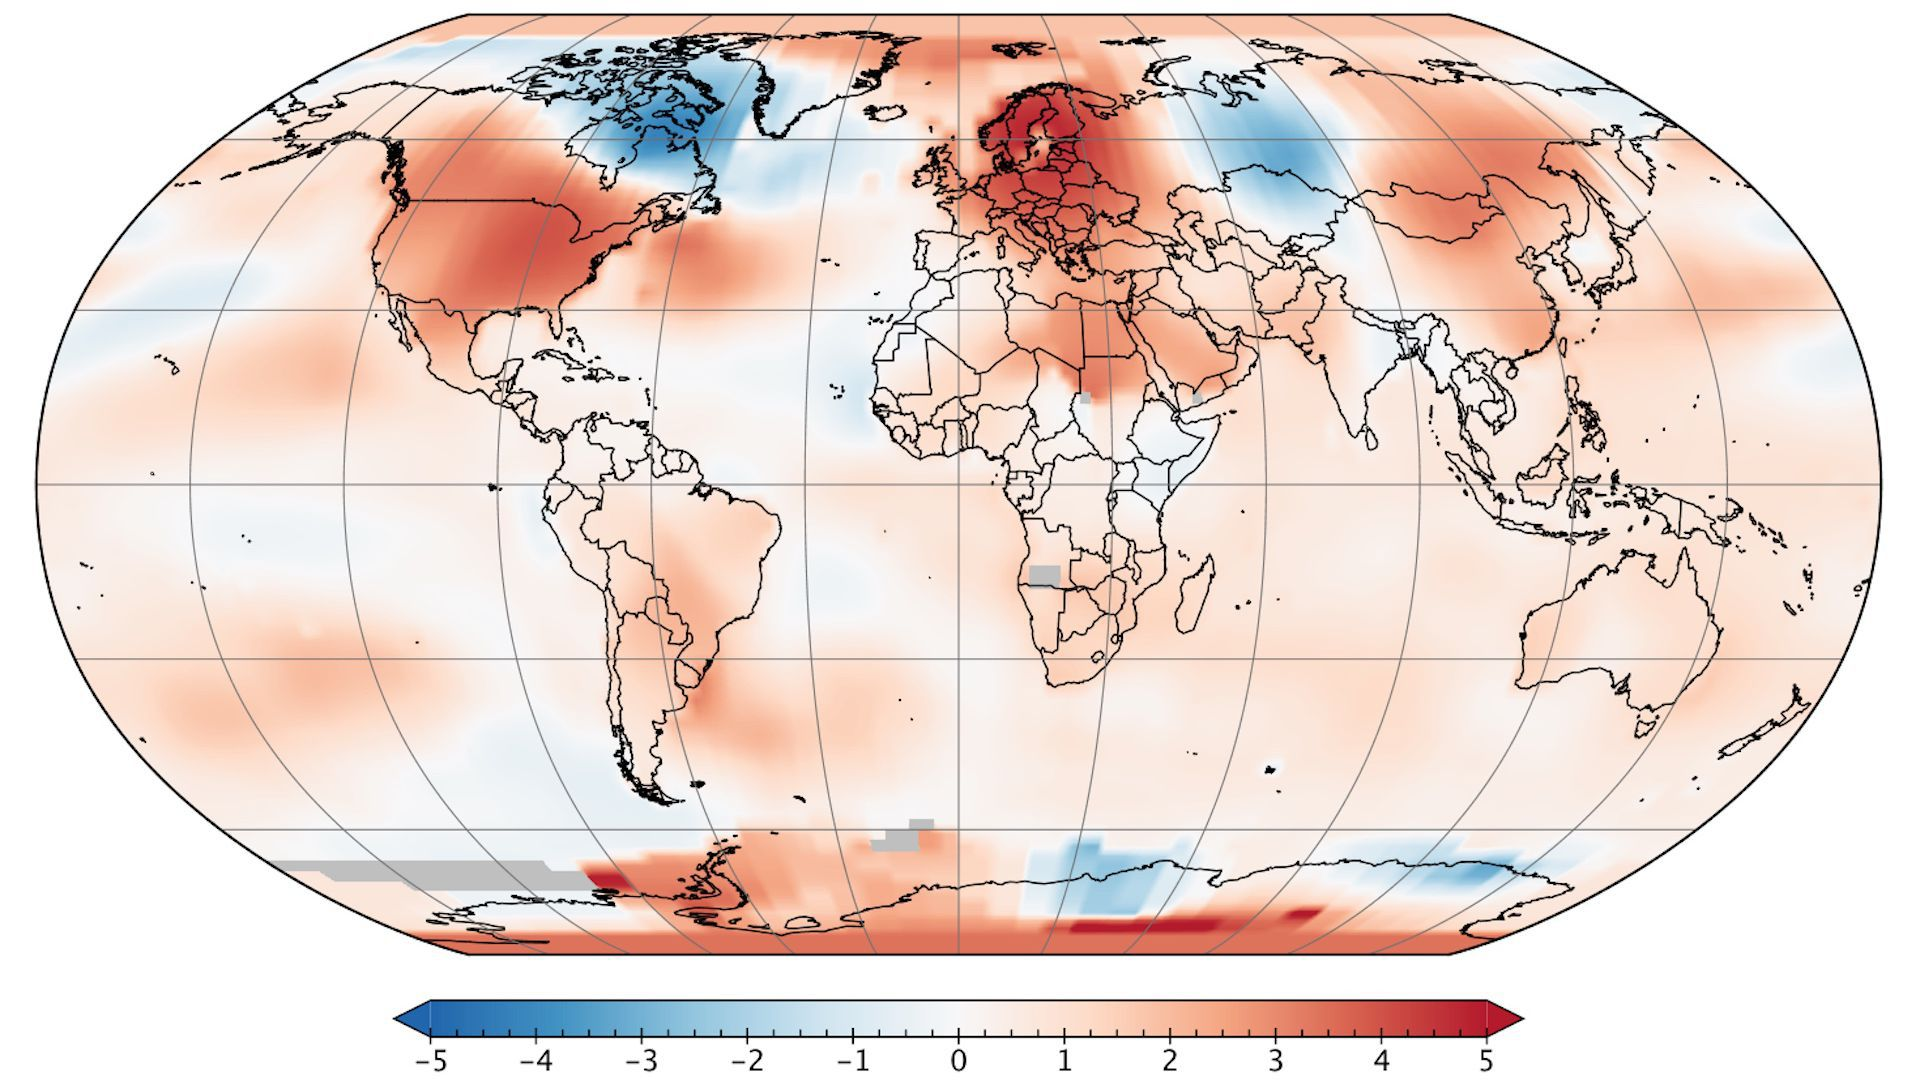 Map of global temperatures in May